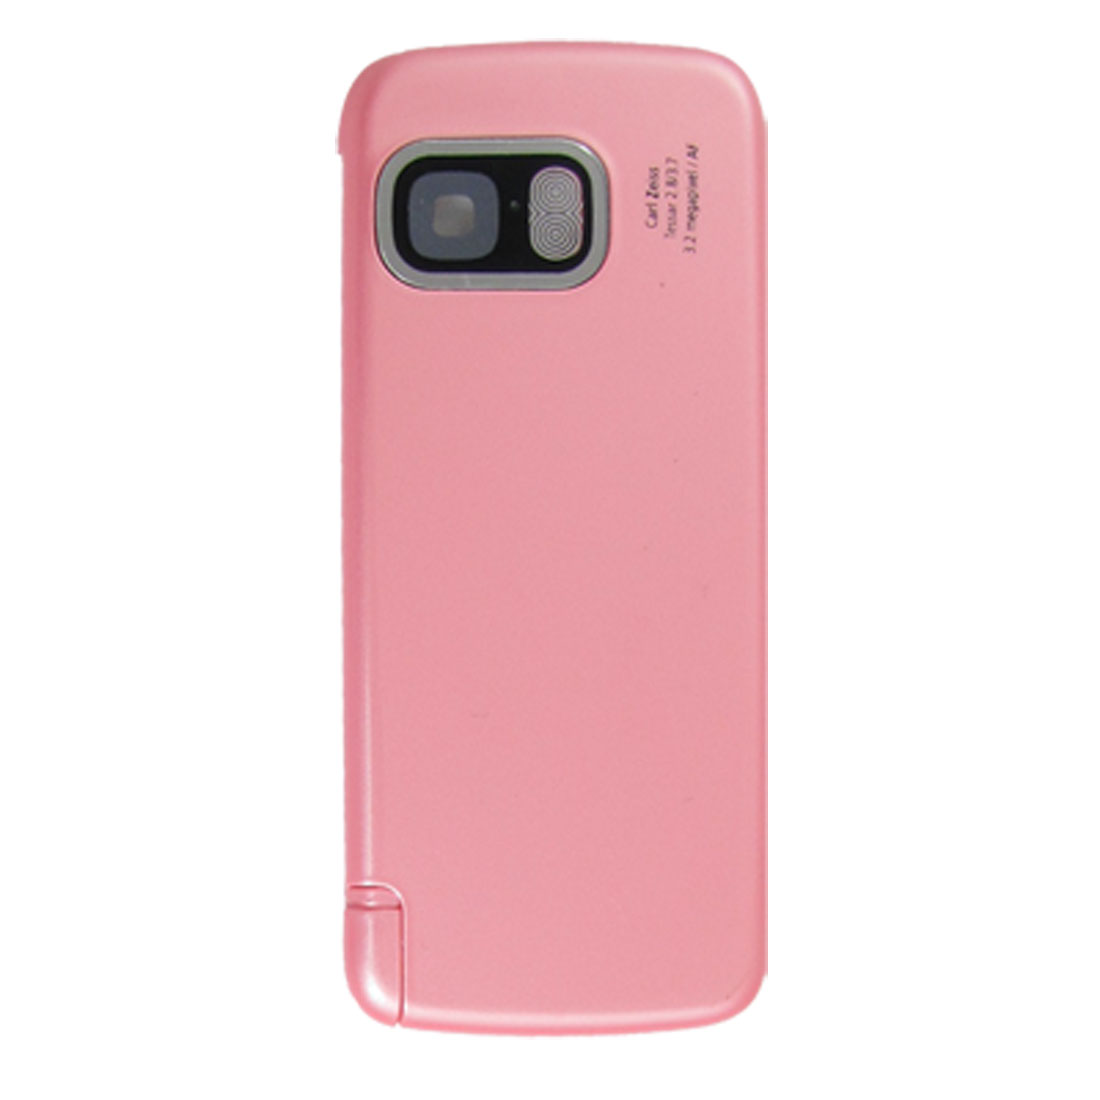 Battery Door Pink Plastic Case Shell for Nokia 5800